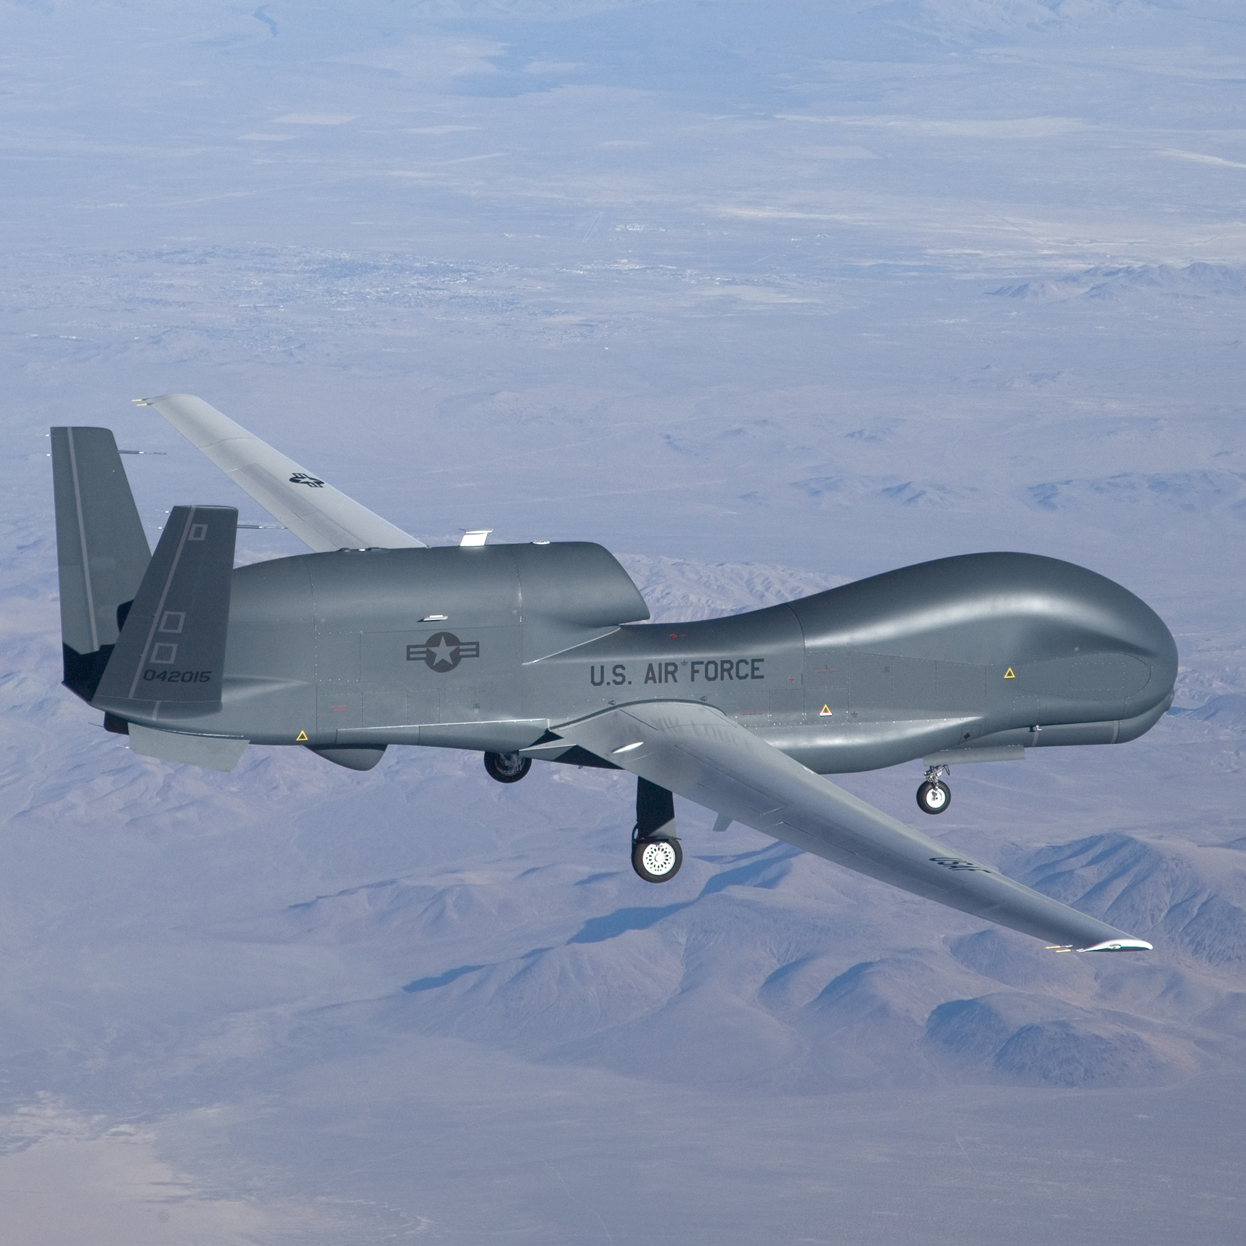 The Air Force's Global Hawk spy drone carries a much heftier price tag than the U-2.